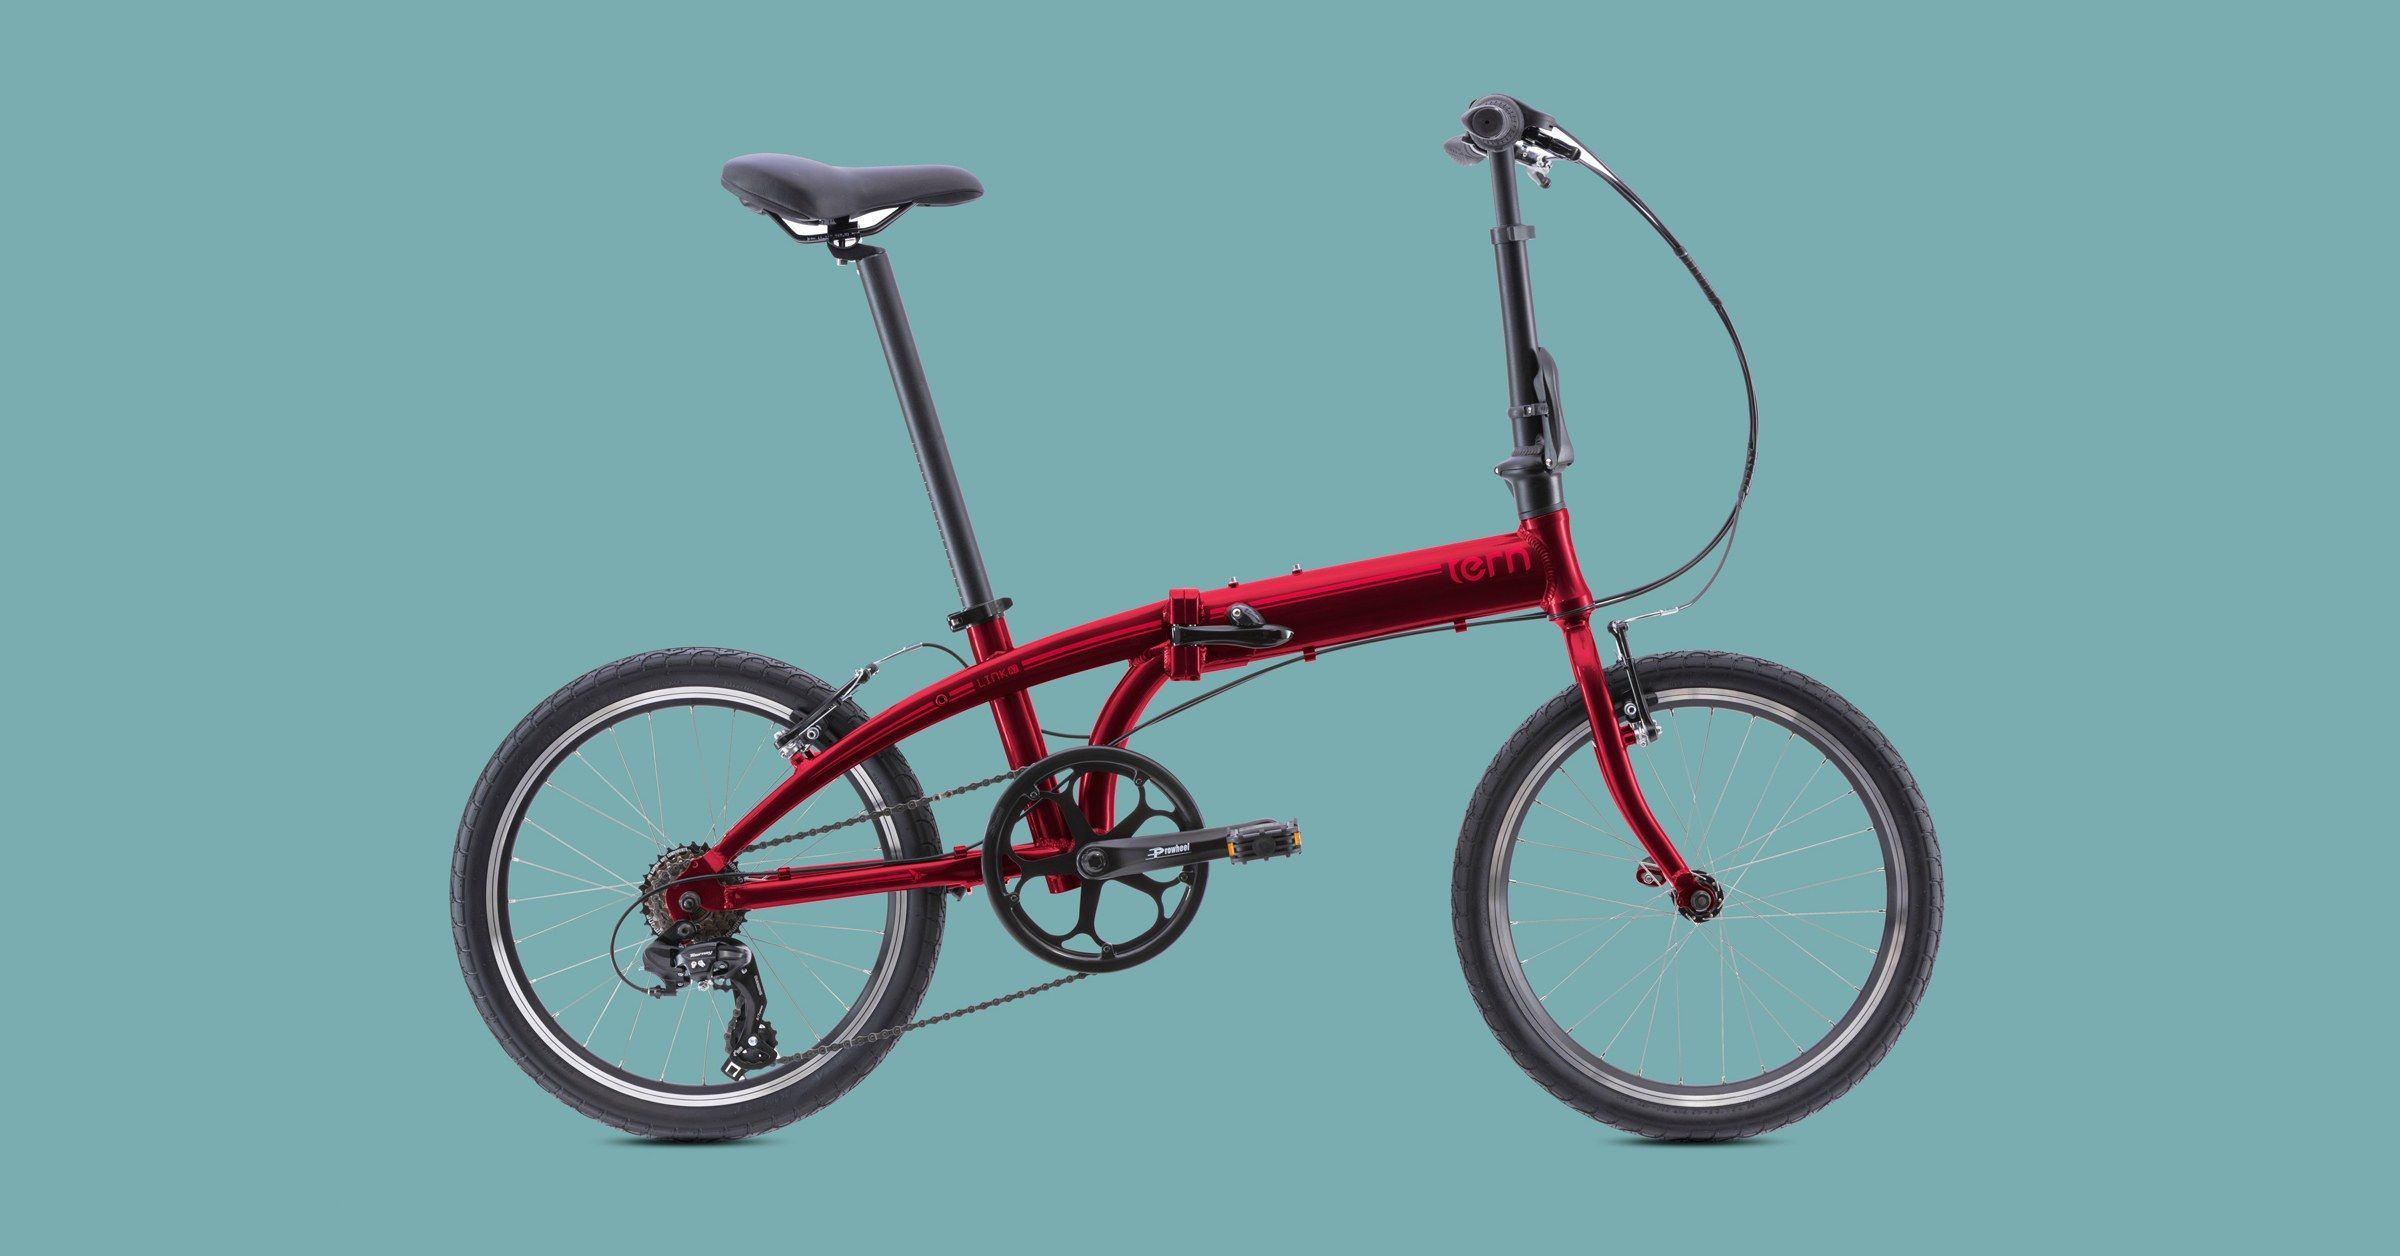 Tern Link A7 Review Affordable And Foldable Folding Bike Bike